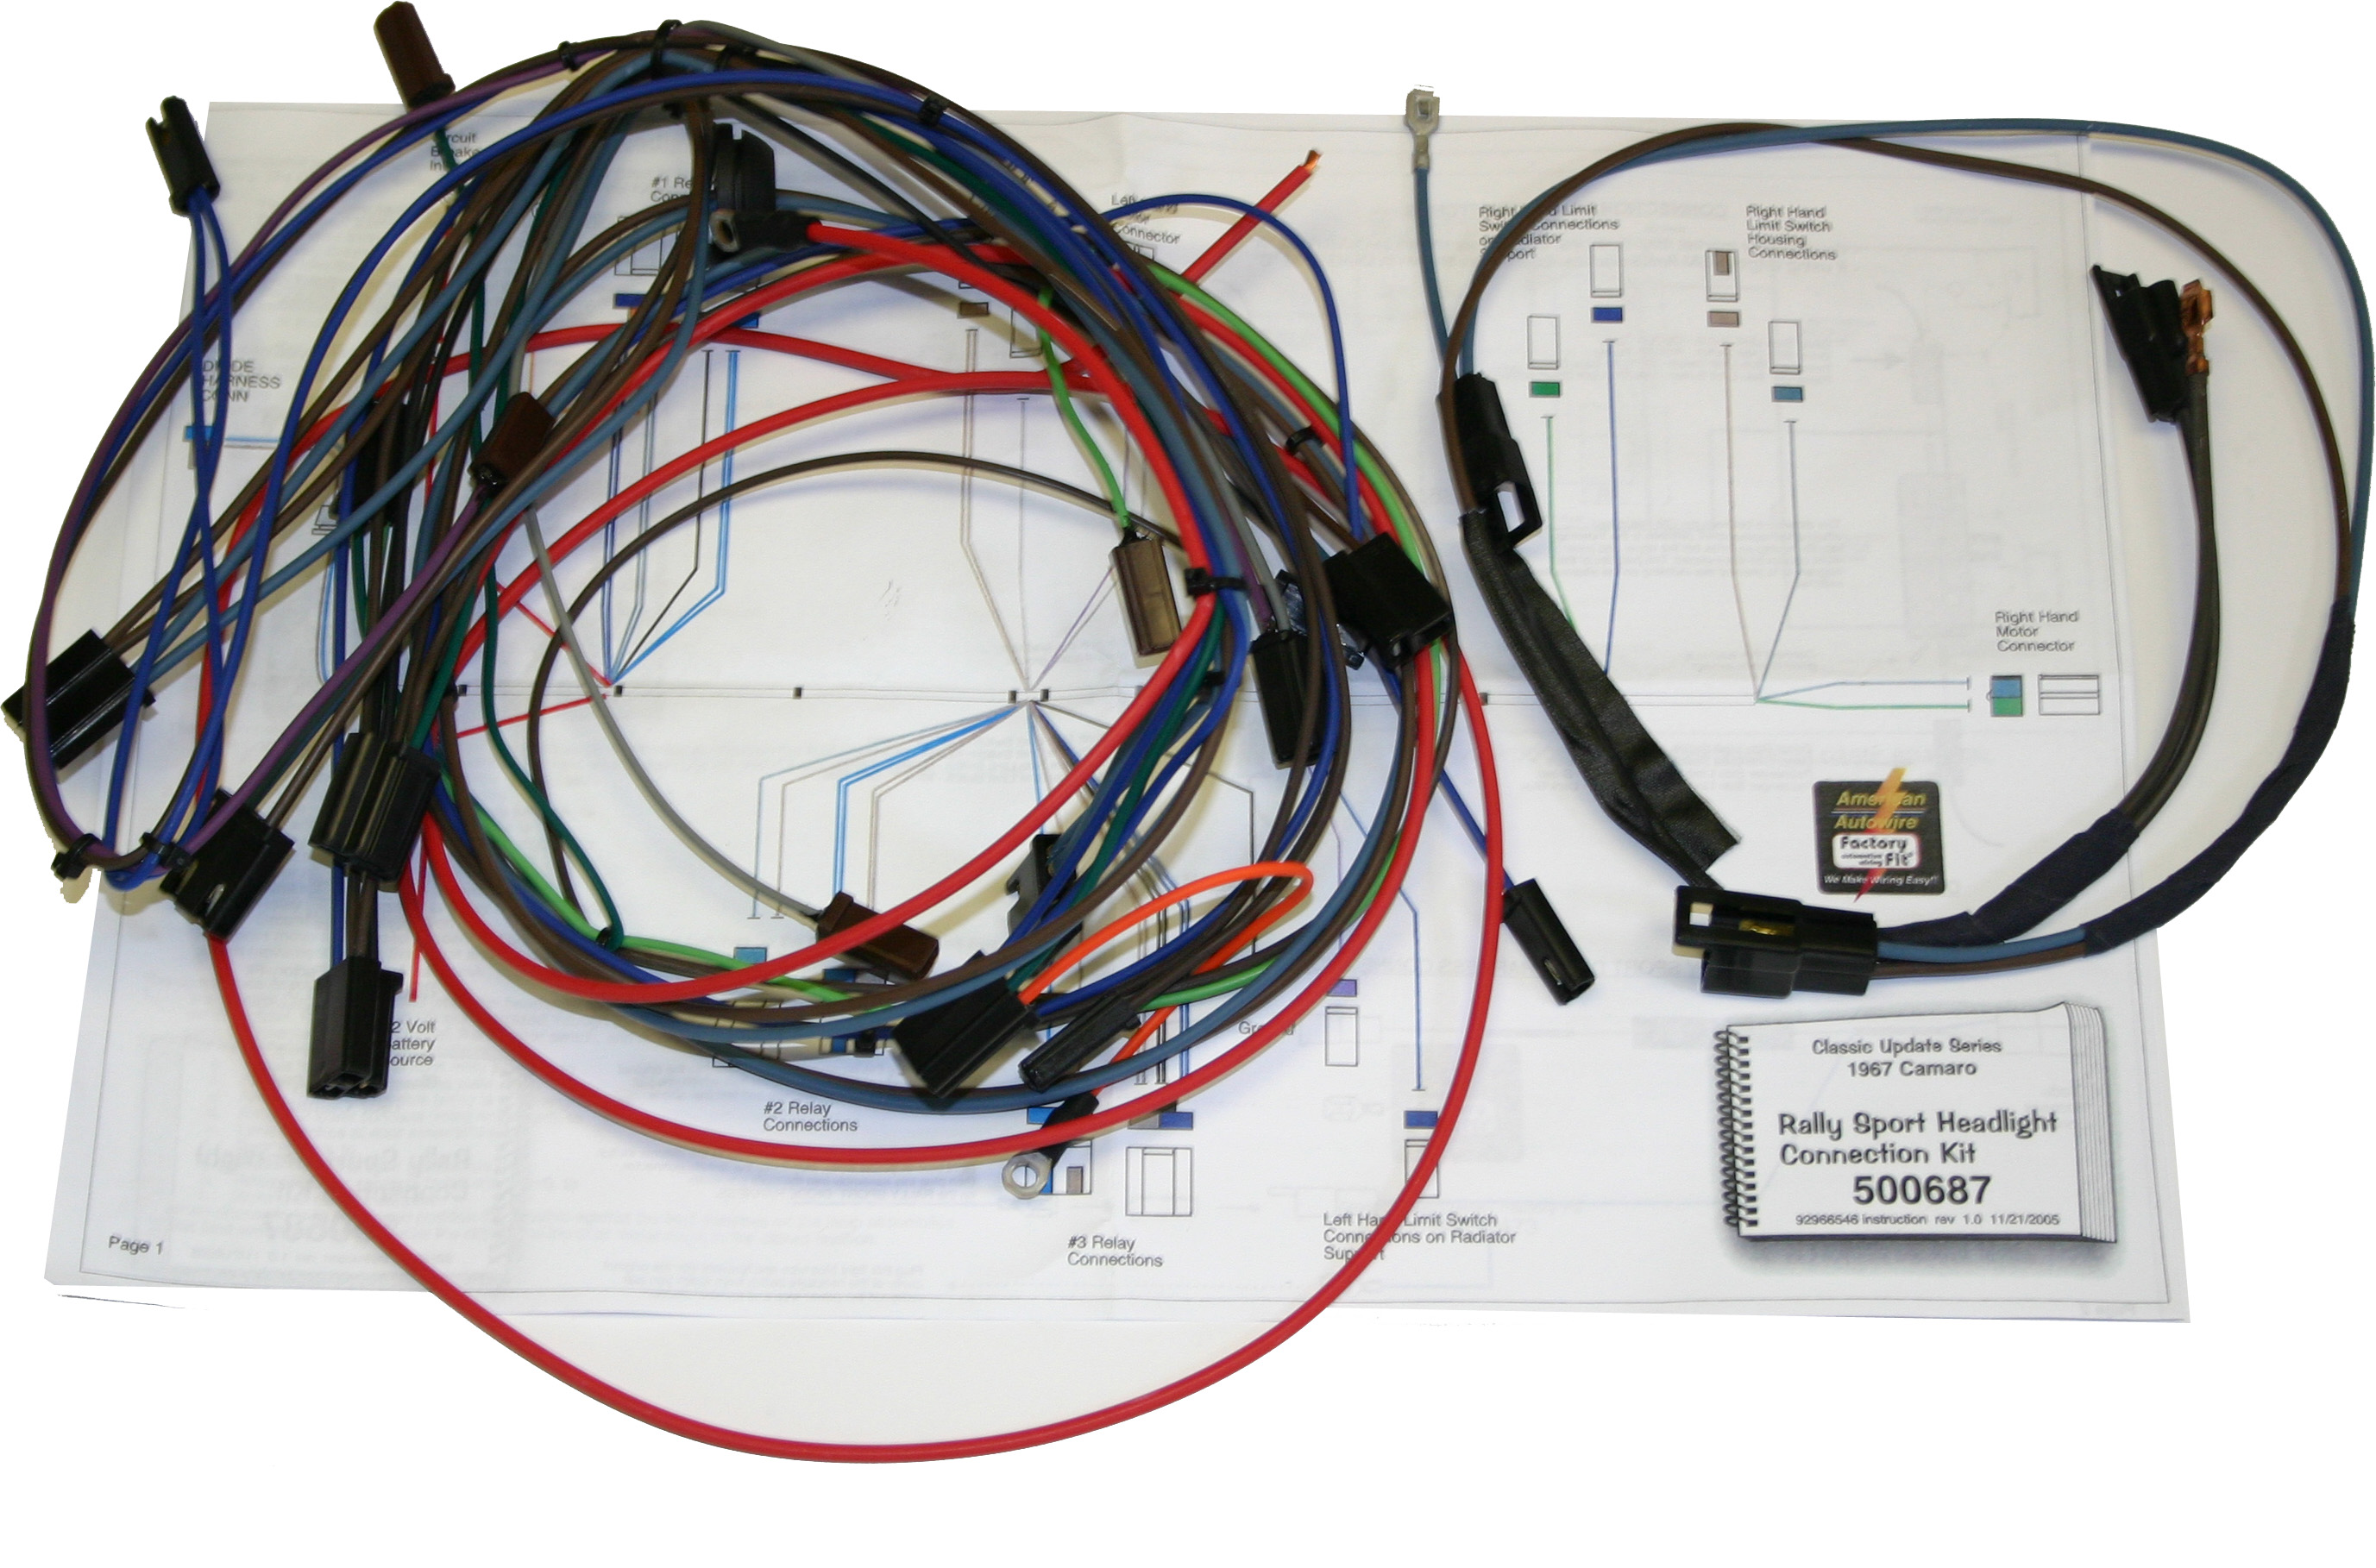 Ez Wiring Harness Instructions Pdf : Ez wiring harness instructions pdf diagram